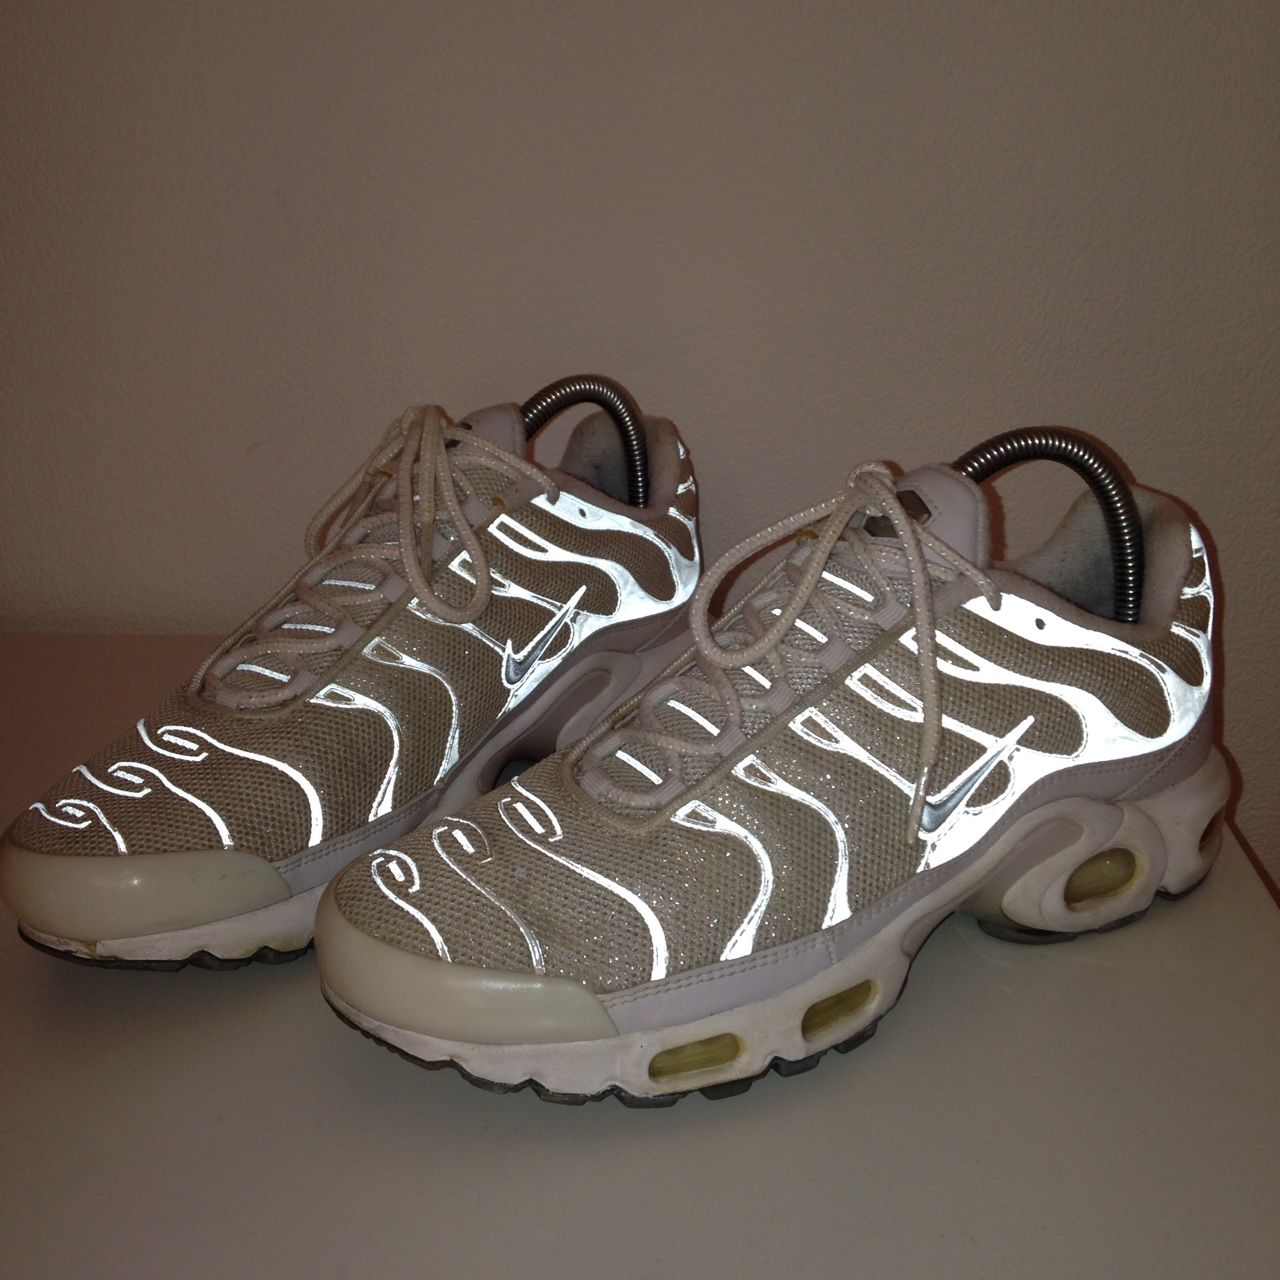 c7690369b10 GLITTER   3M AIR MAX TN. UK 6.5 link in bio to buy. Waviest mother fuckers  around. £78